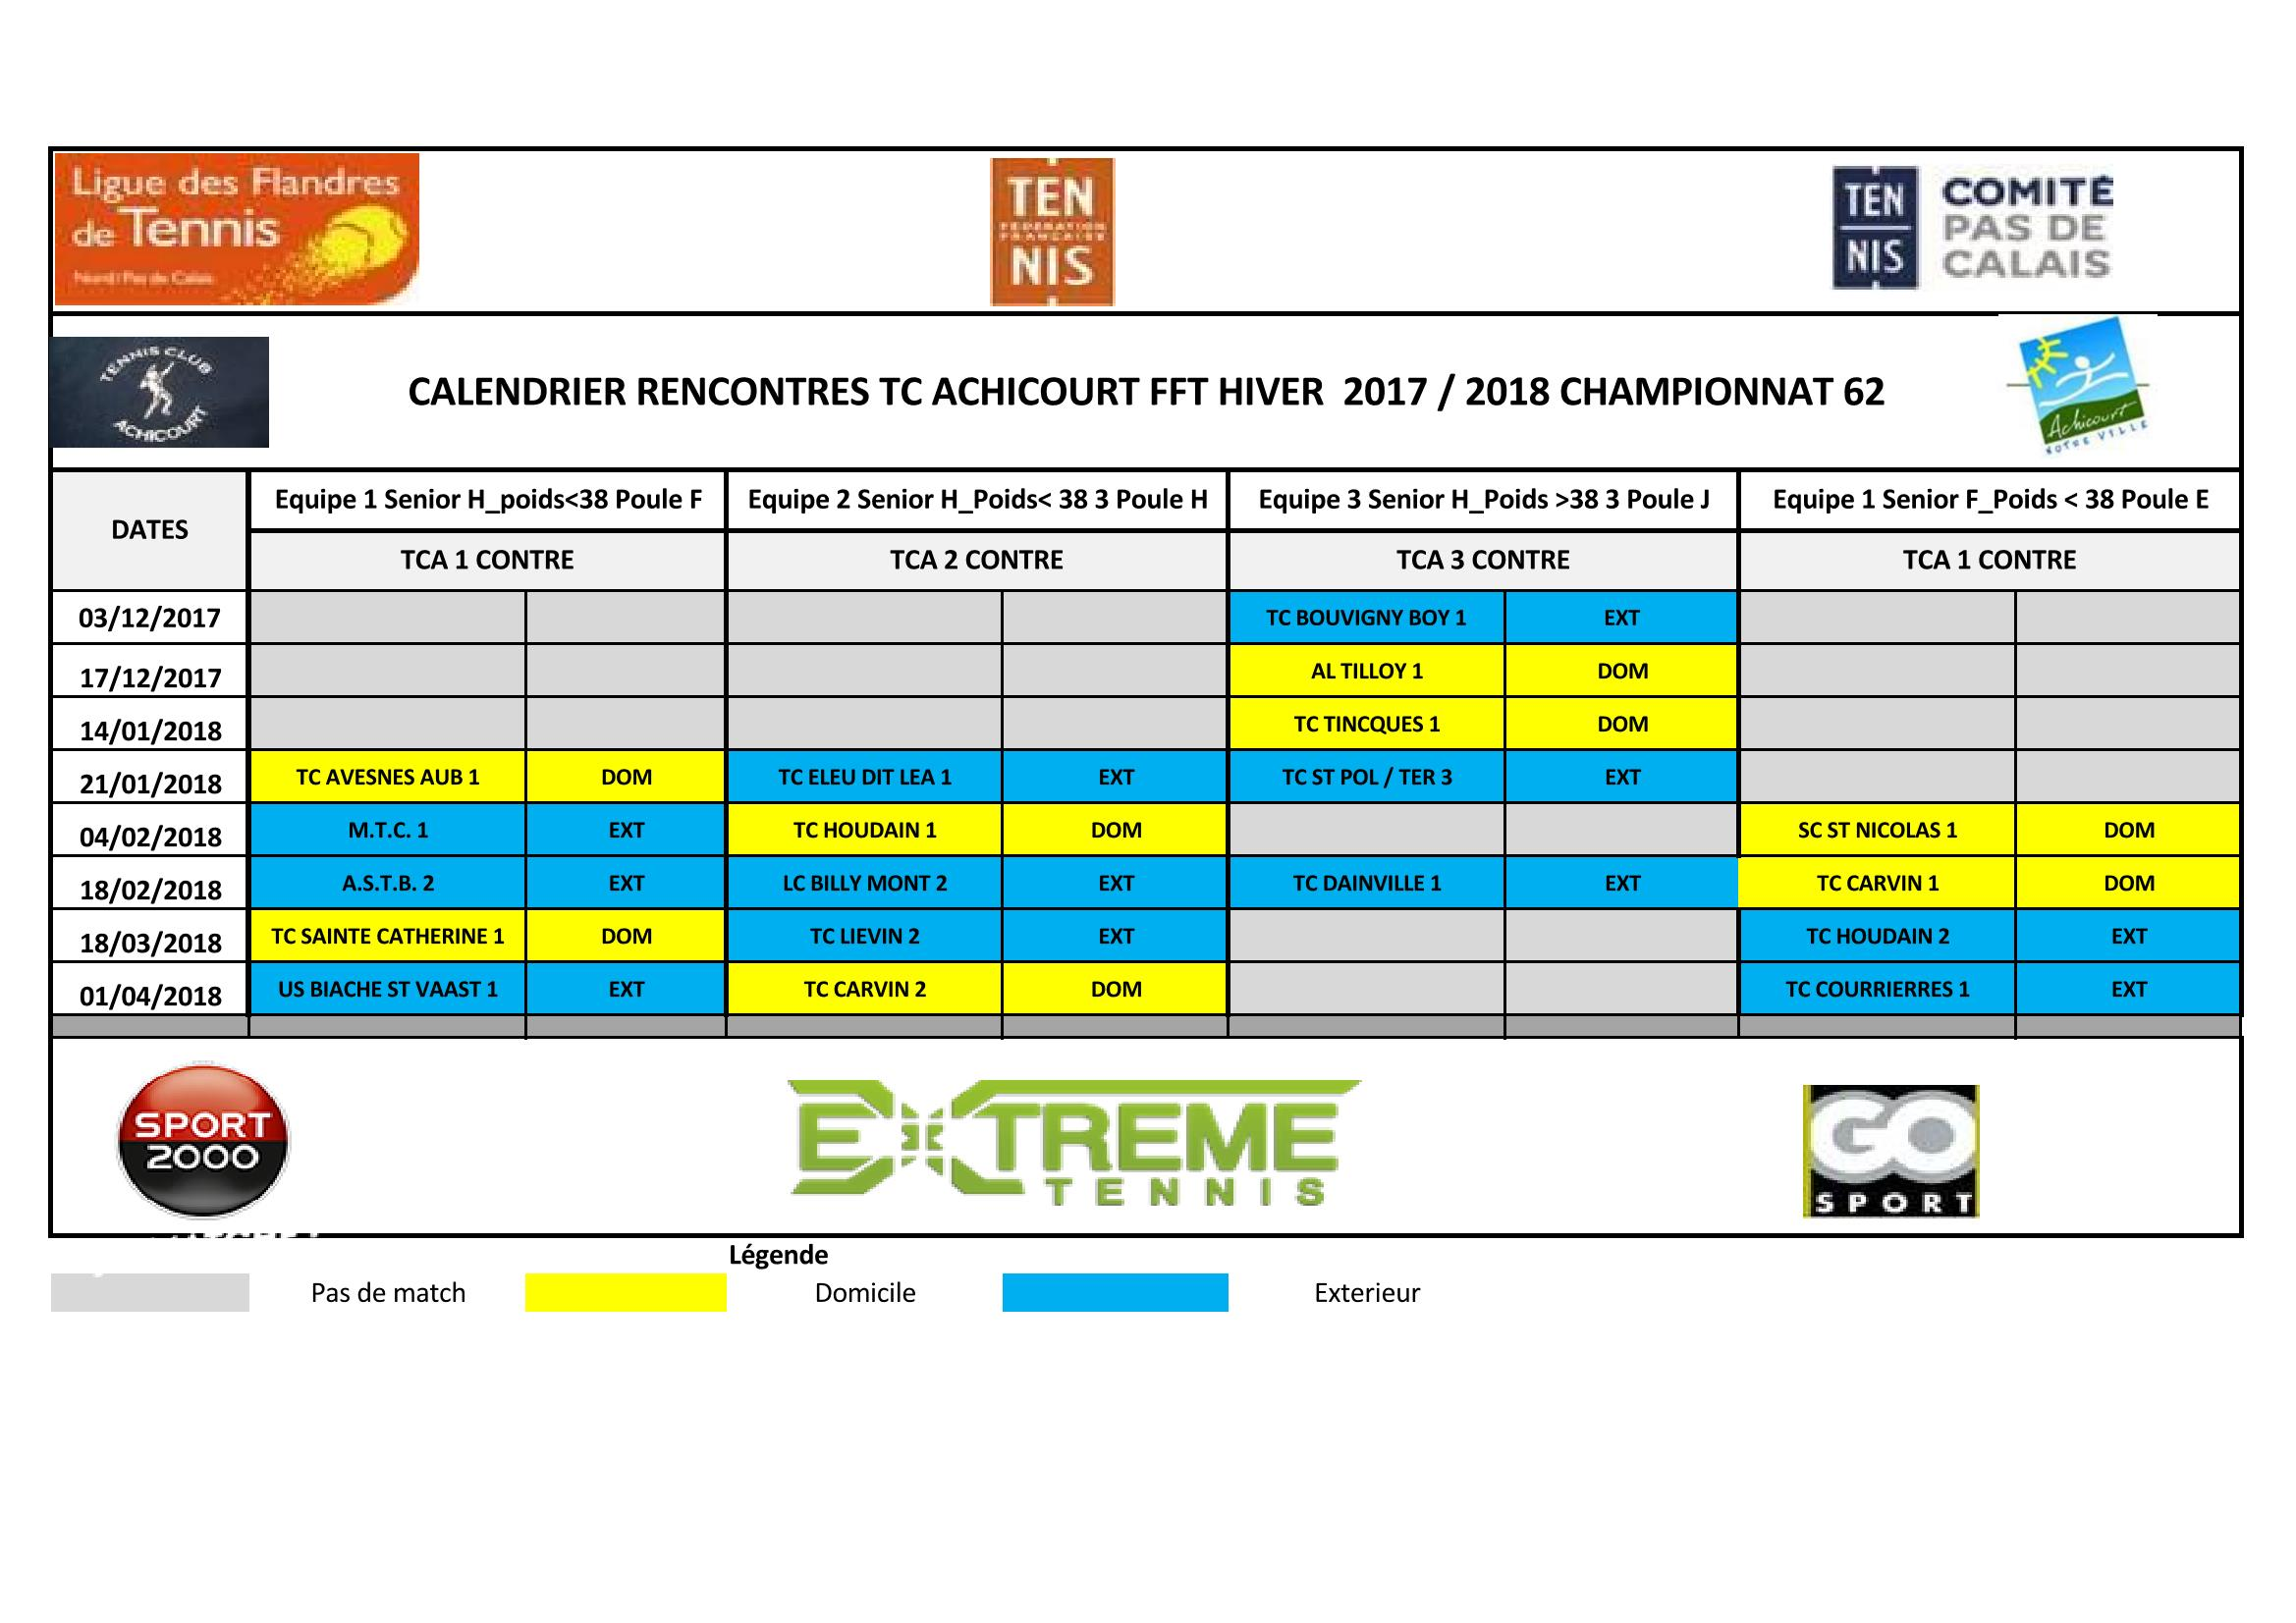 Calendrier Rencontres 2017 2018